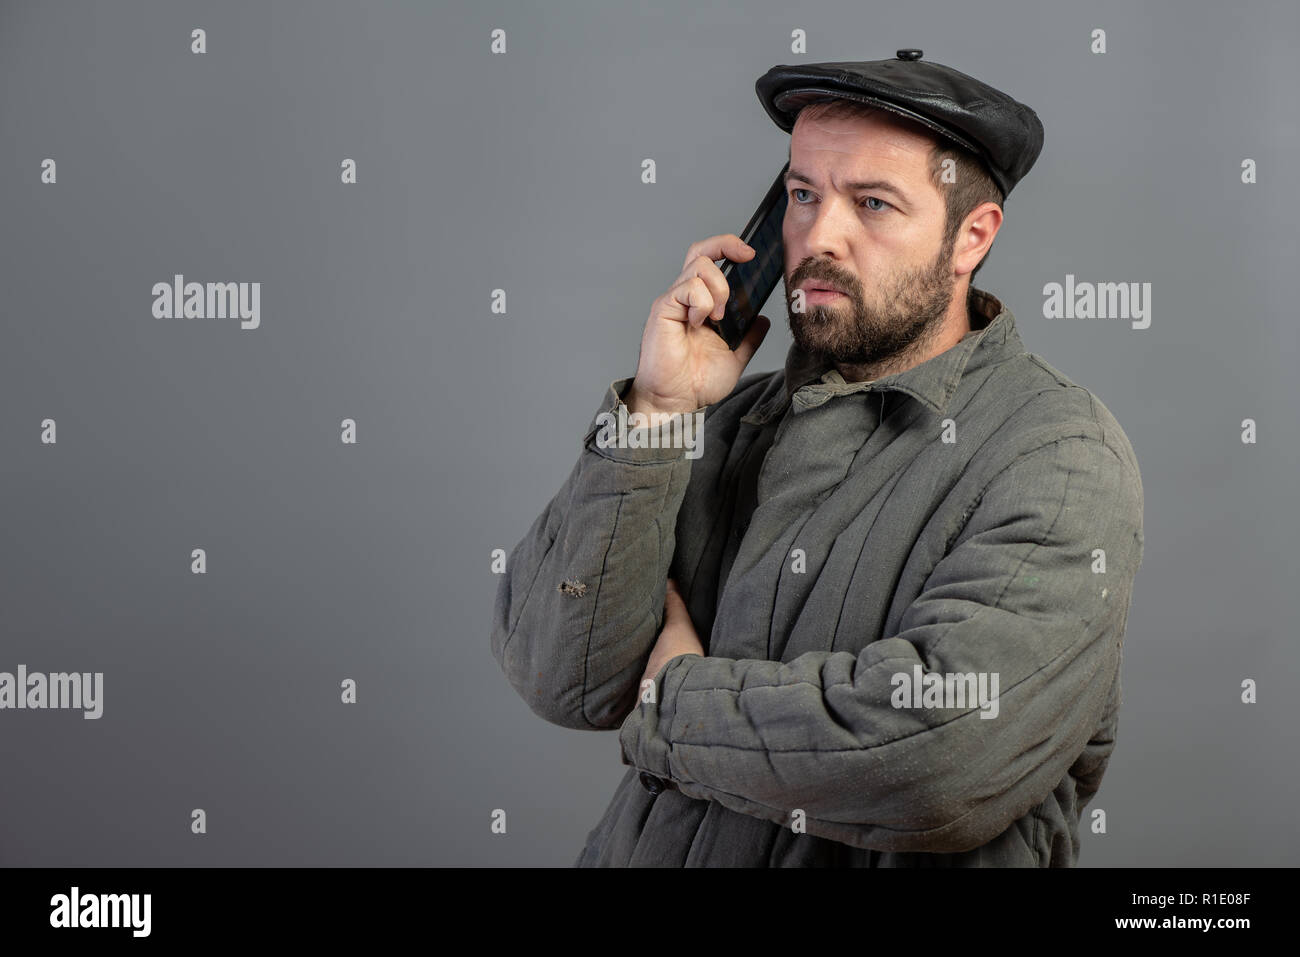 Serious caucasian man 35 years old speaks on mobile phone, studio shot. Idea - village dweller and modern technology, set Stock Photo